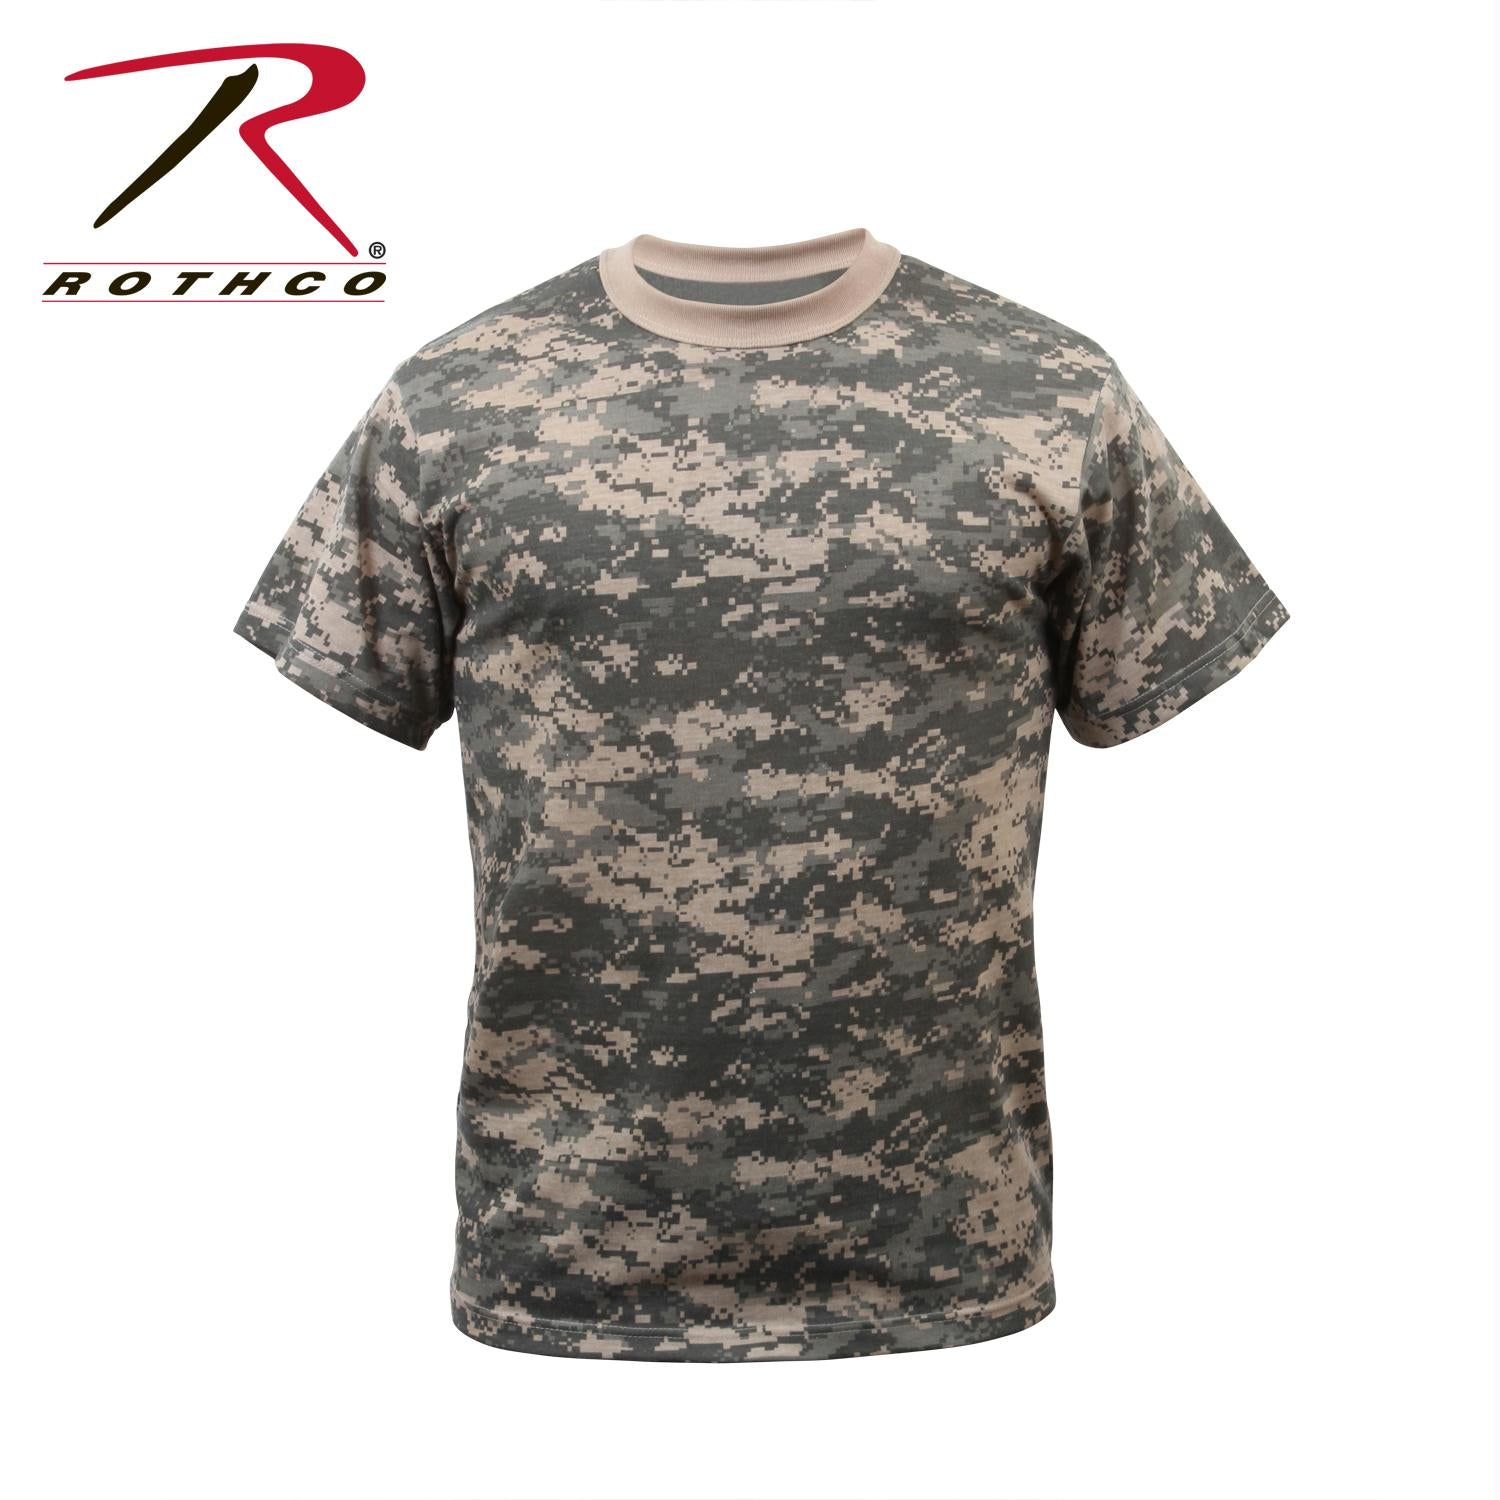 Rothco Digital Camo T-Shirt - ACU Digital Camo / XL